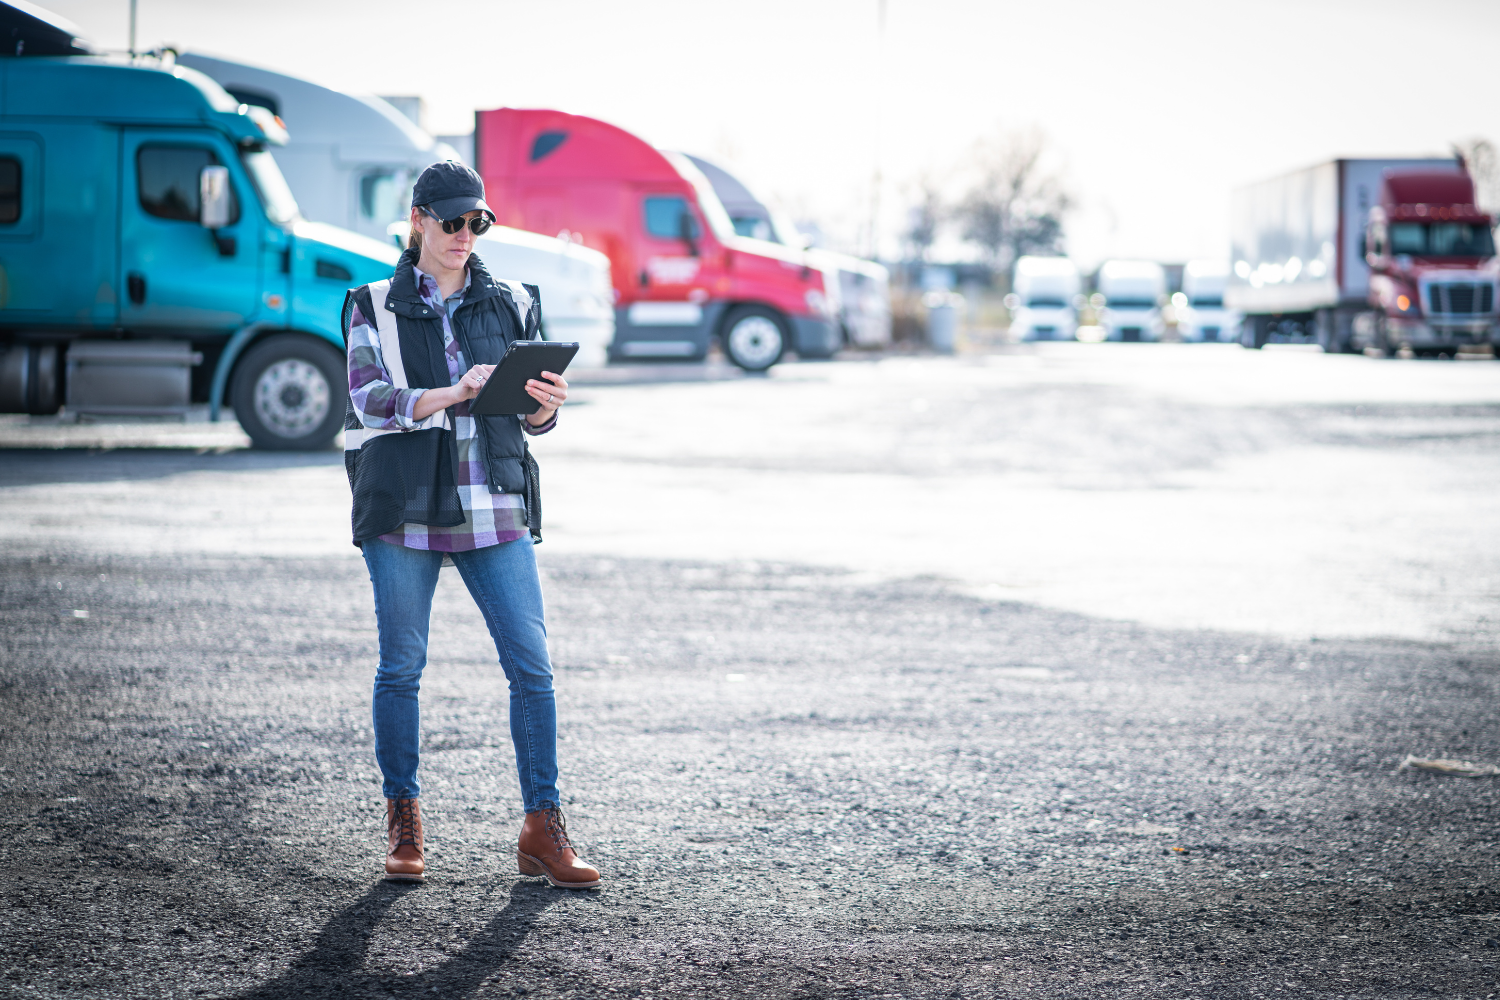 An employee utilizing yard management software to control trucks moving trailers and inventory assets in and out of the operations yard